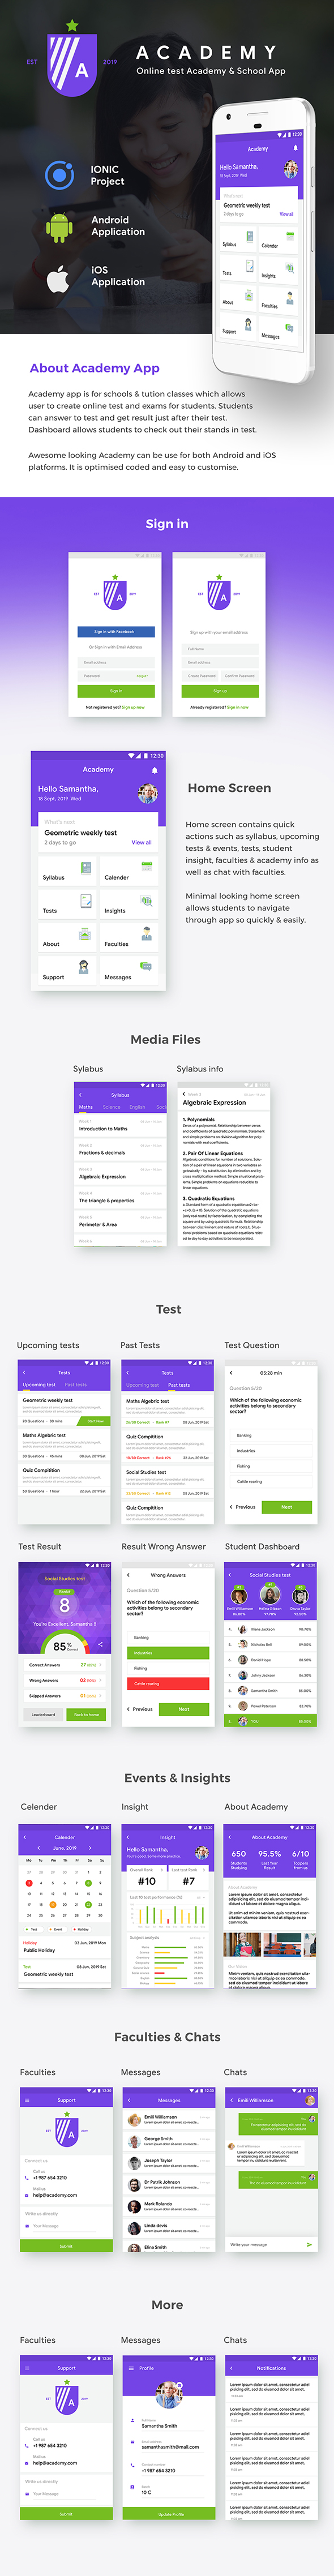 Online Test for School & Academy Template (HMTL + Css) IONIC 4 | Academy - 2